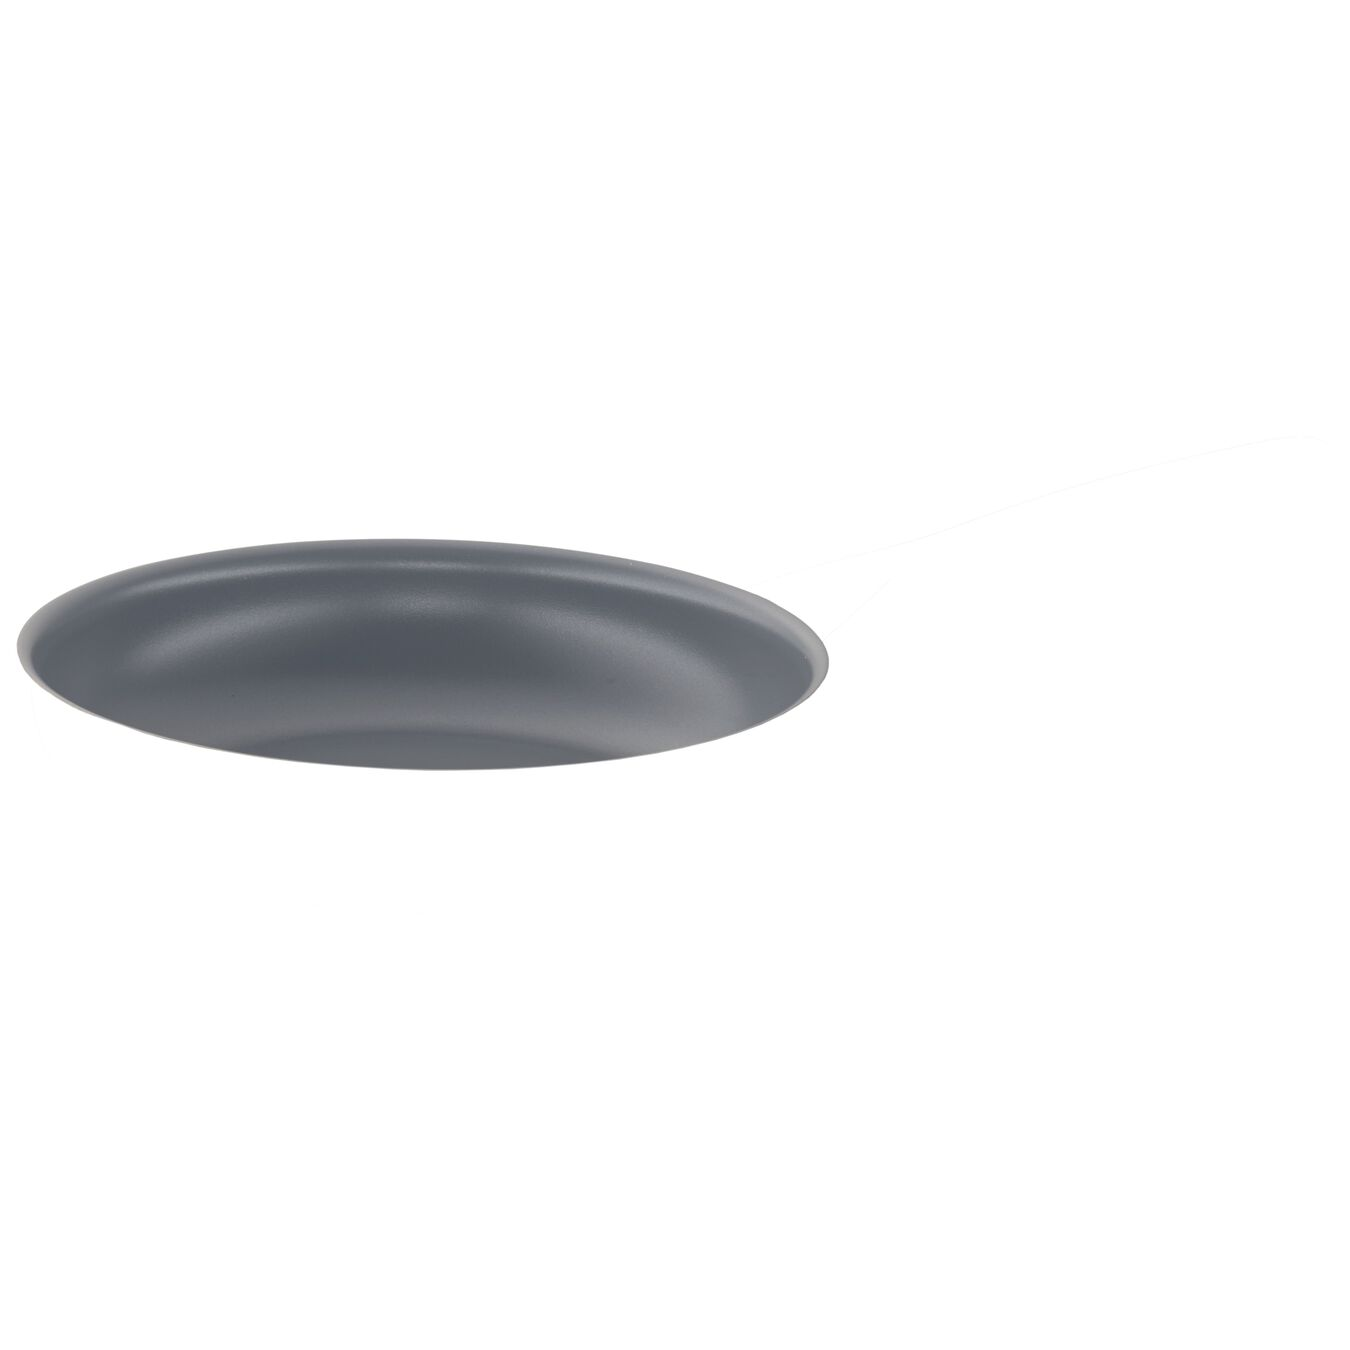 8-inch Stainless Steel Ceramic Nonstick Fry Pan,,large 2